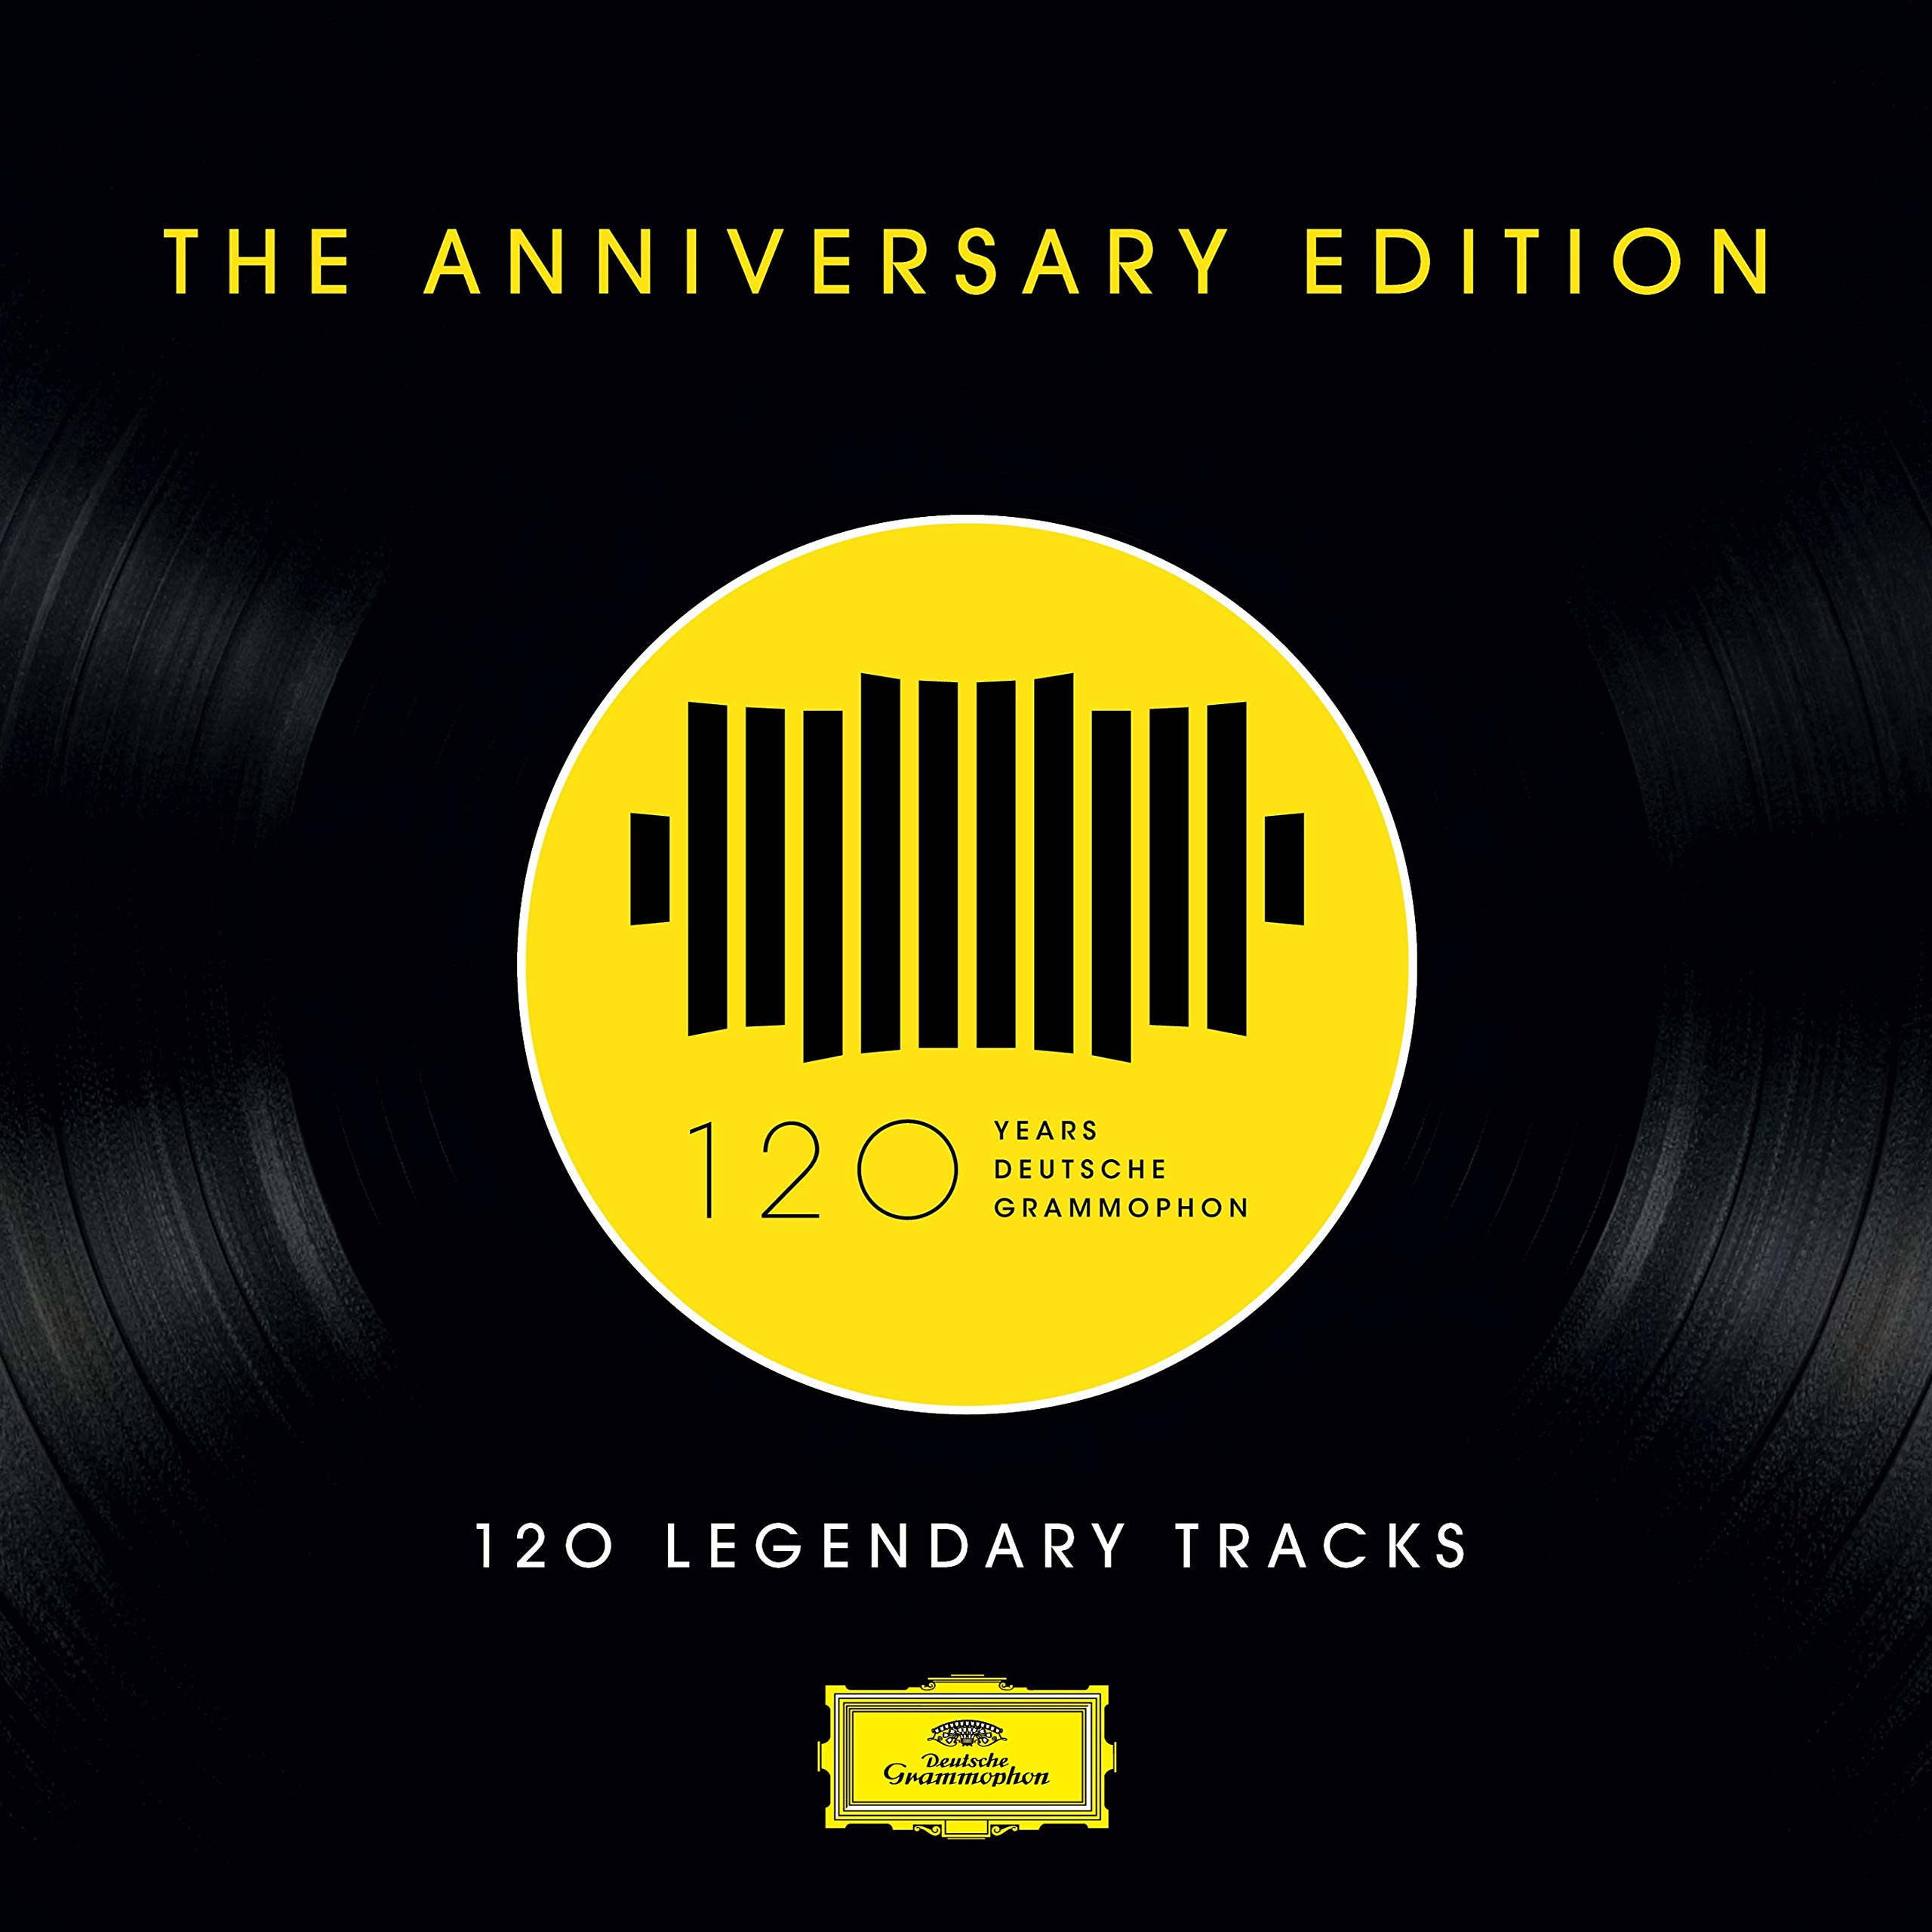 CD : VARIOUS ARTISTS - Anniversary Editon - 120 Legendary Tracks (Boxed Set)